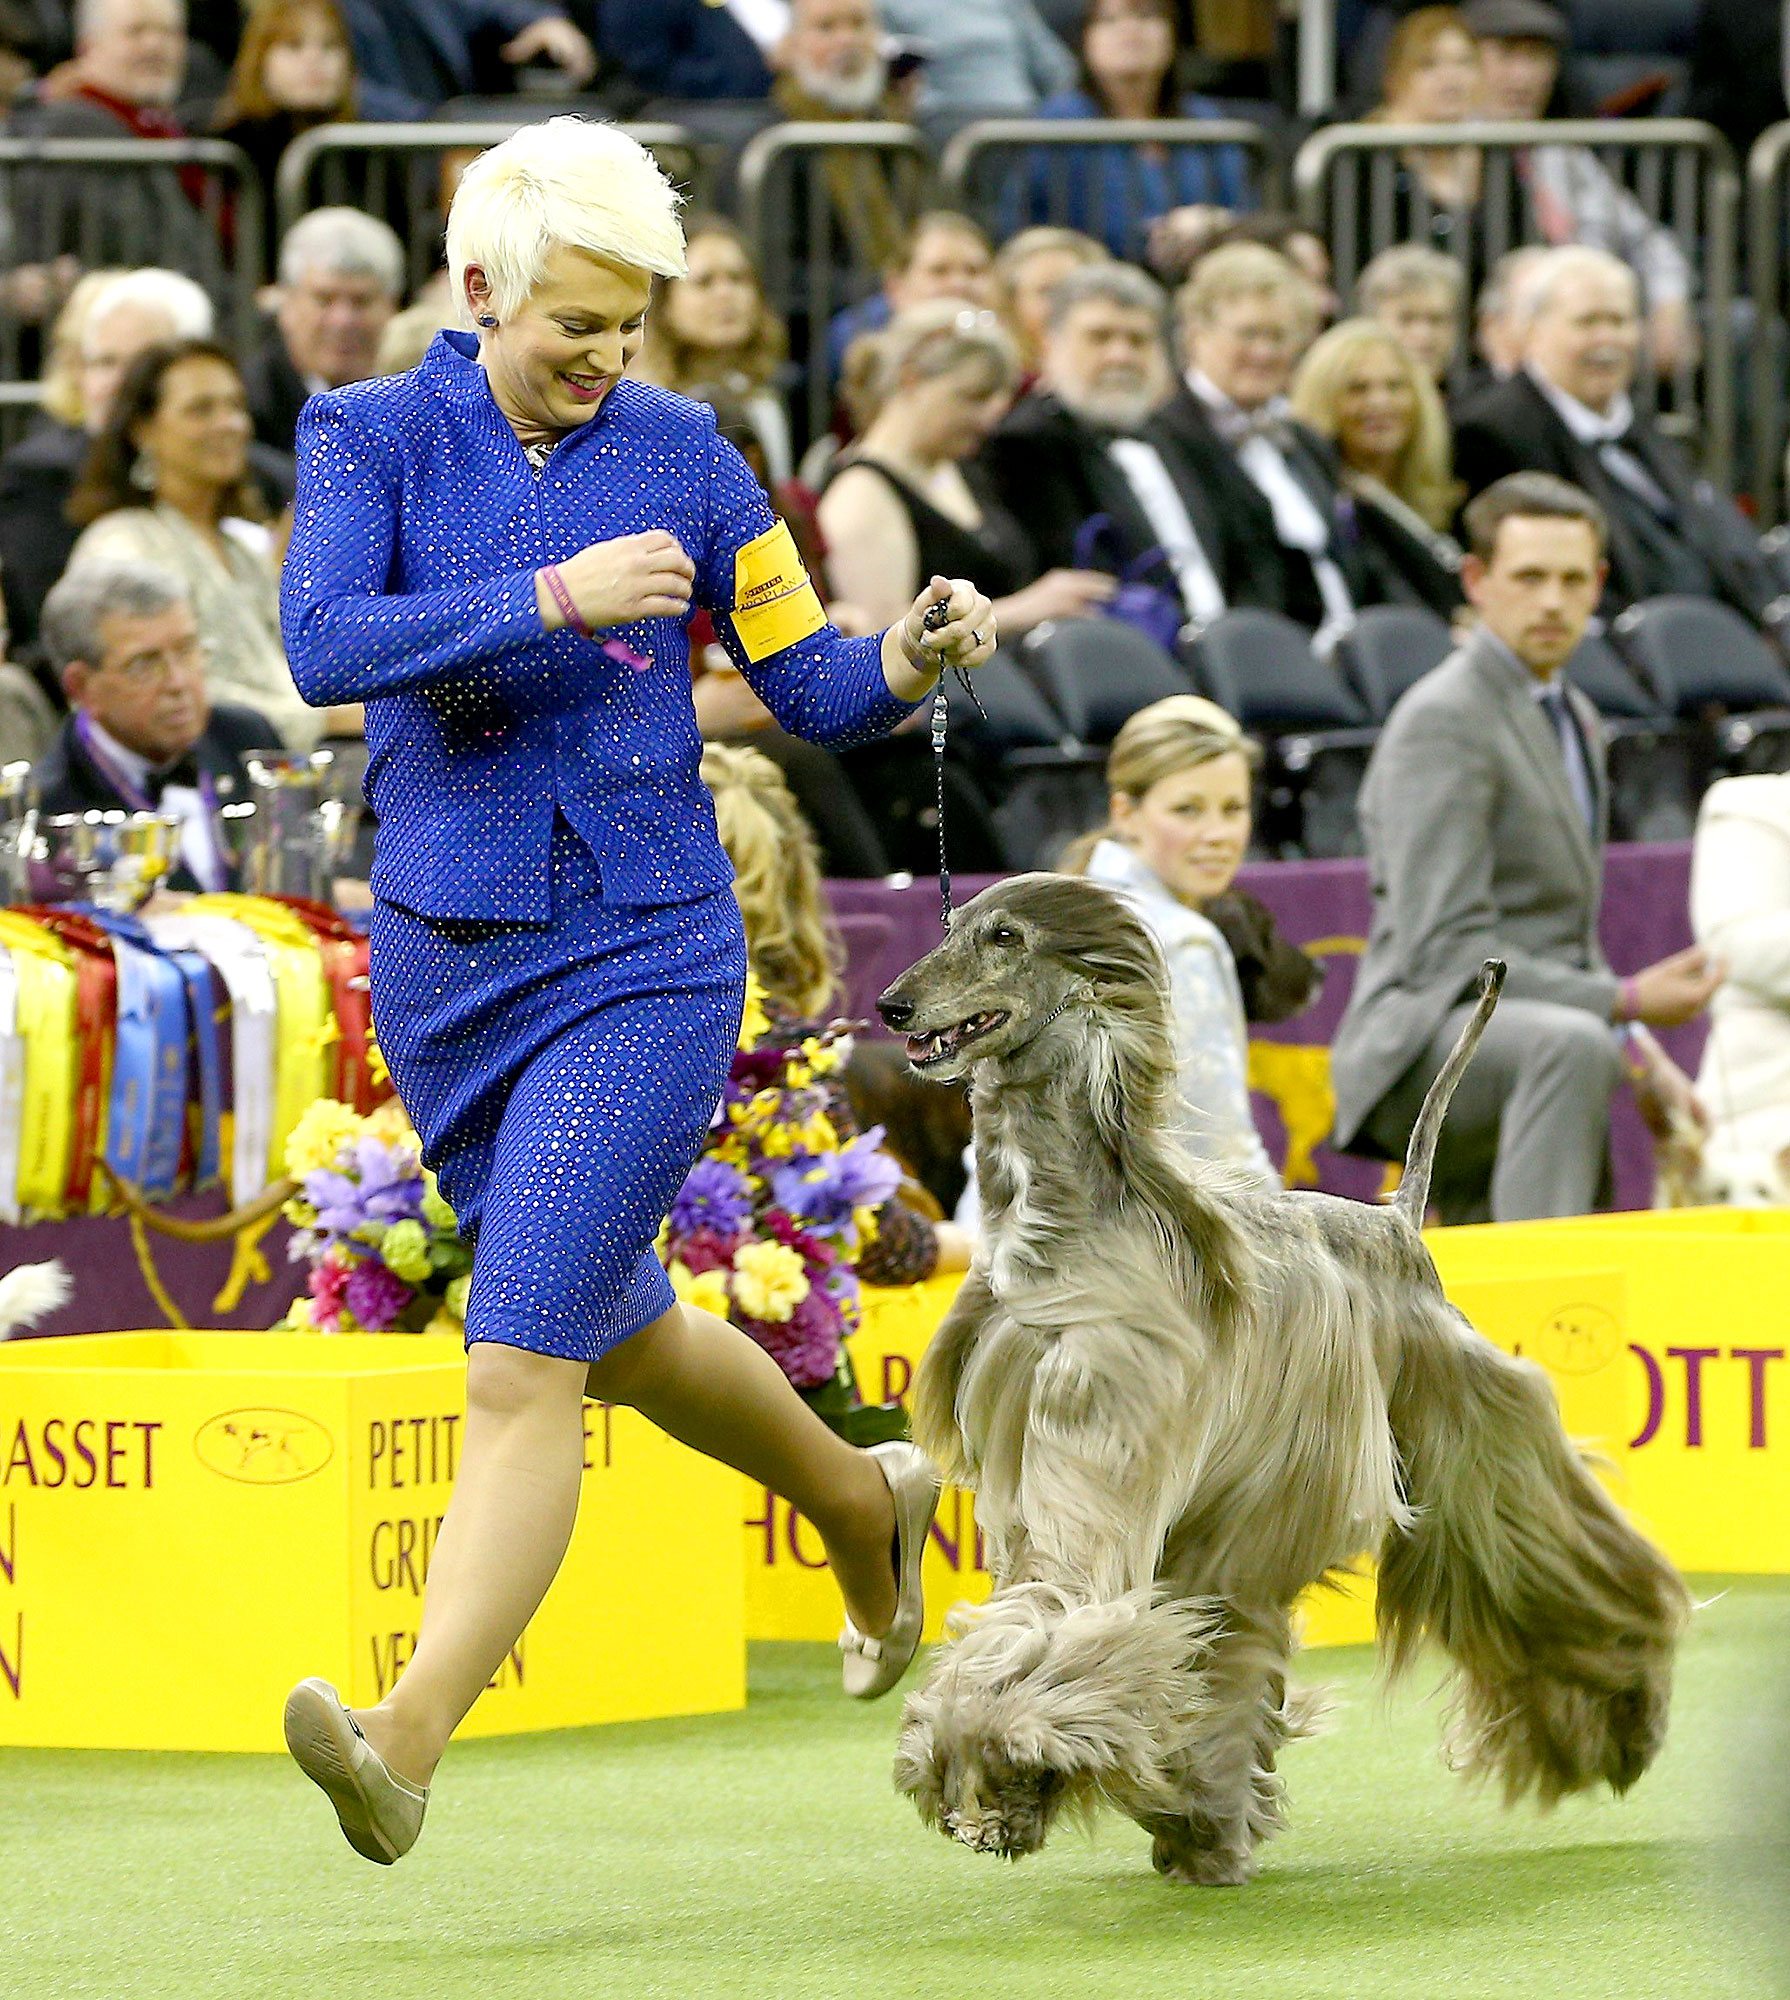 Best of breed afghan hound GCH CH Agha Djari's Fifth Dimension of Sura competes to represent the hound group in the Best in Show final of the 141st Westminster Kennel Club Dog Show at Madison Square Garden on February 13, 2017 in New York City.